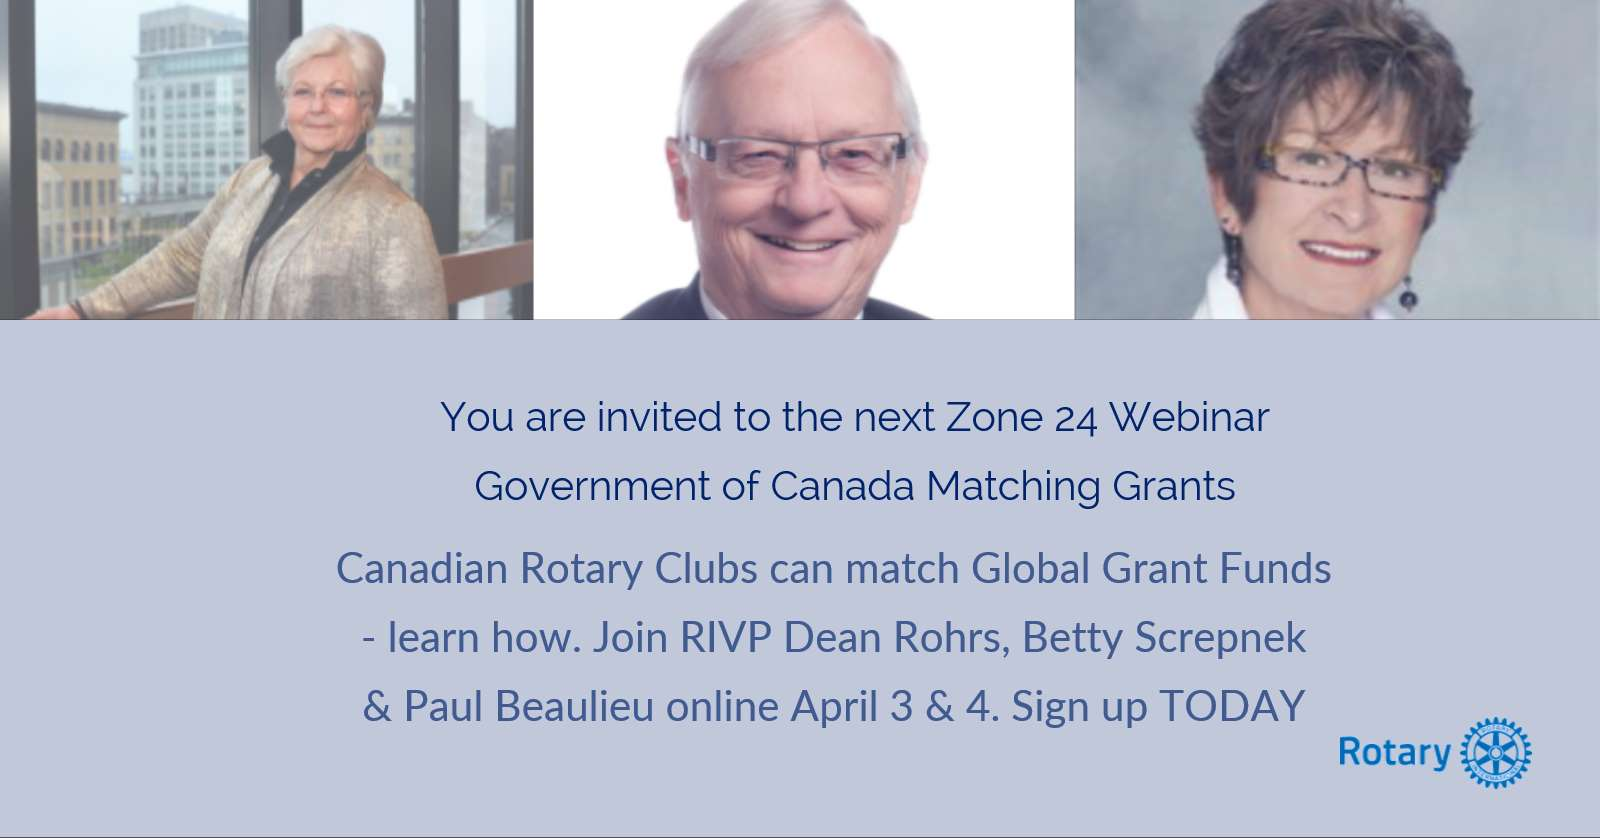 Stories rotary e club of canada one to listen to the webinar please click here httpsvimeo263184106 solutioingenieria Gallery